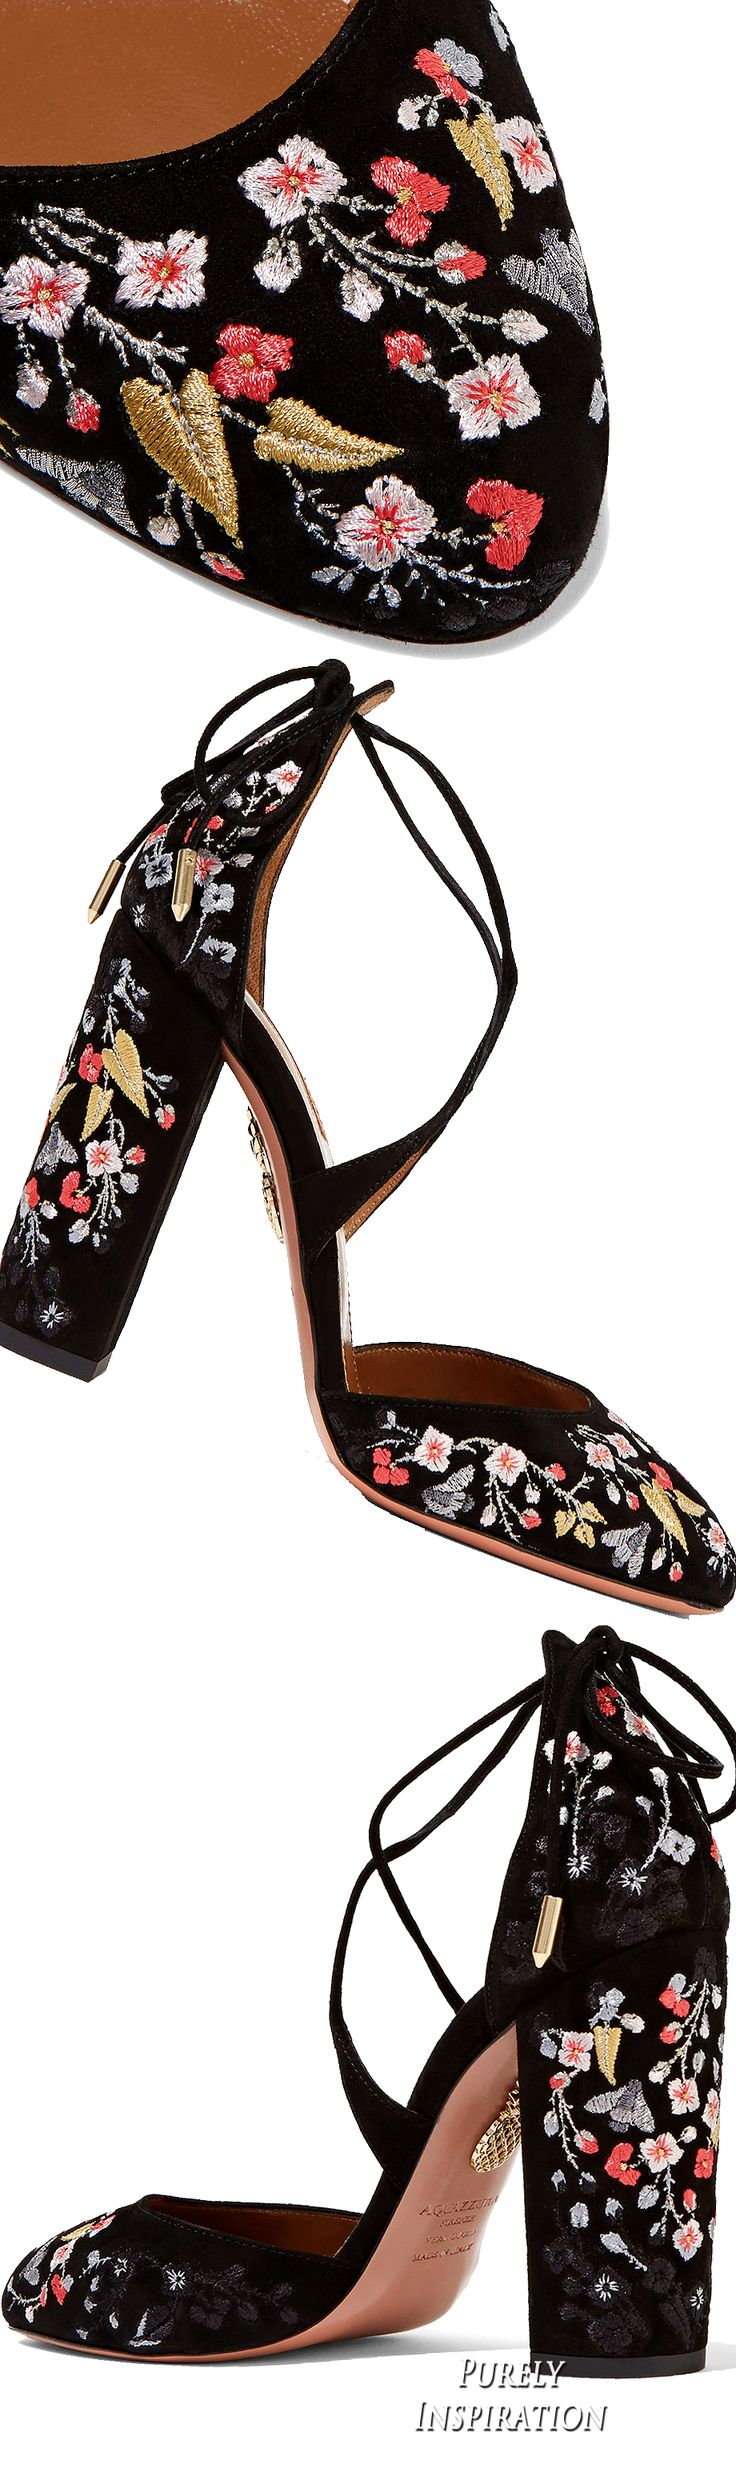 Aquazzura Karlie embroidered suede pumps http://www.utelier.com/